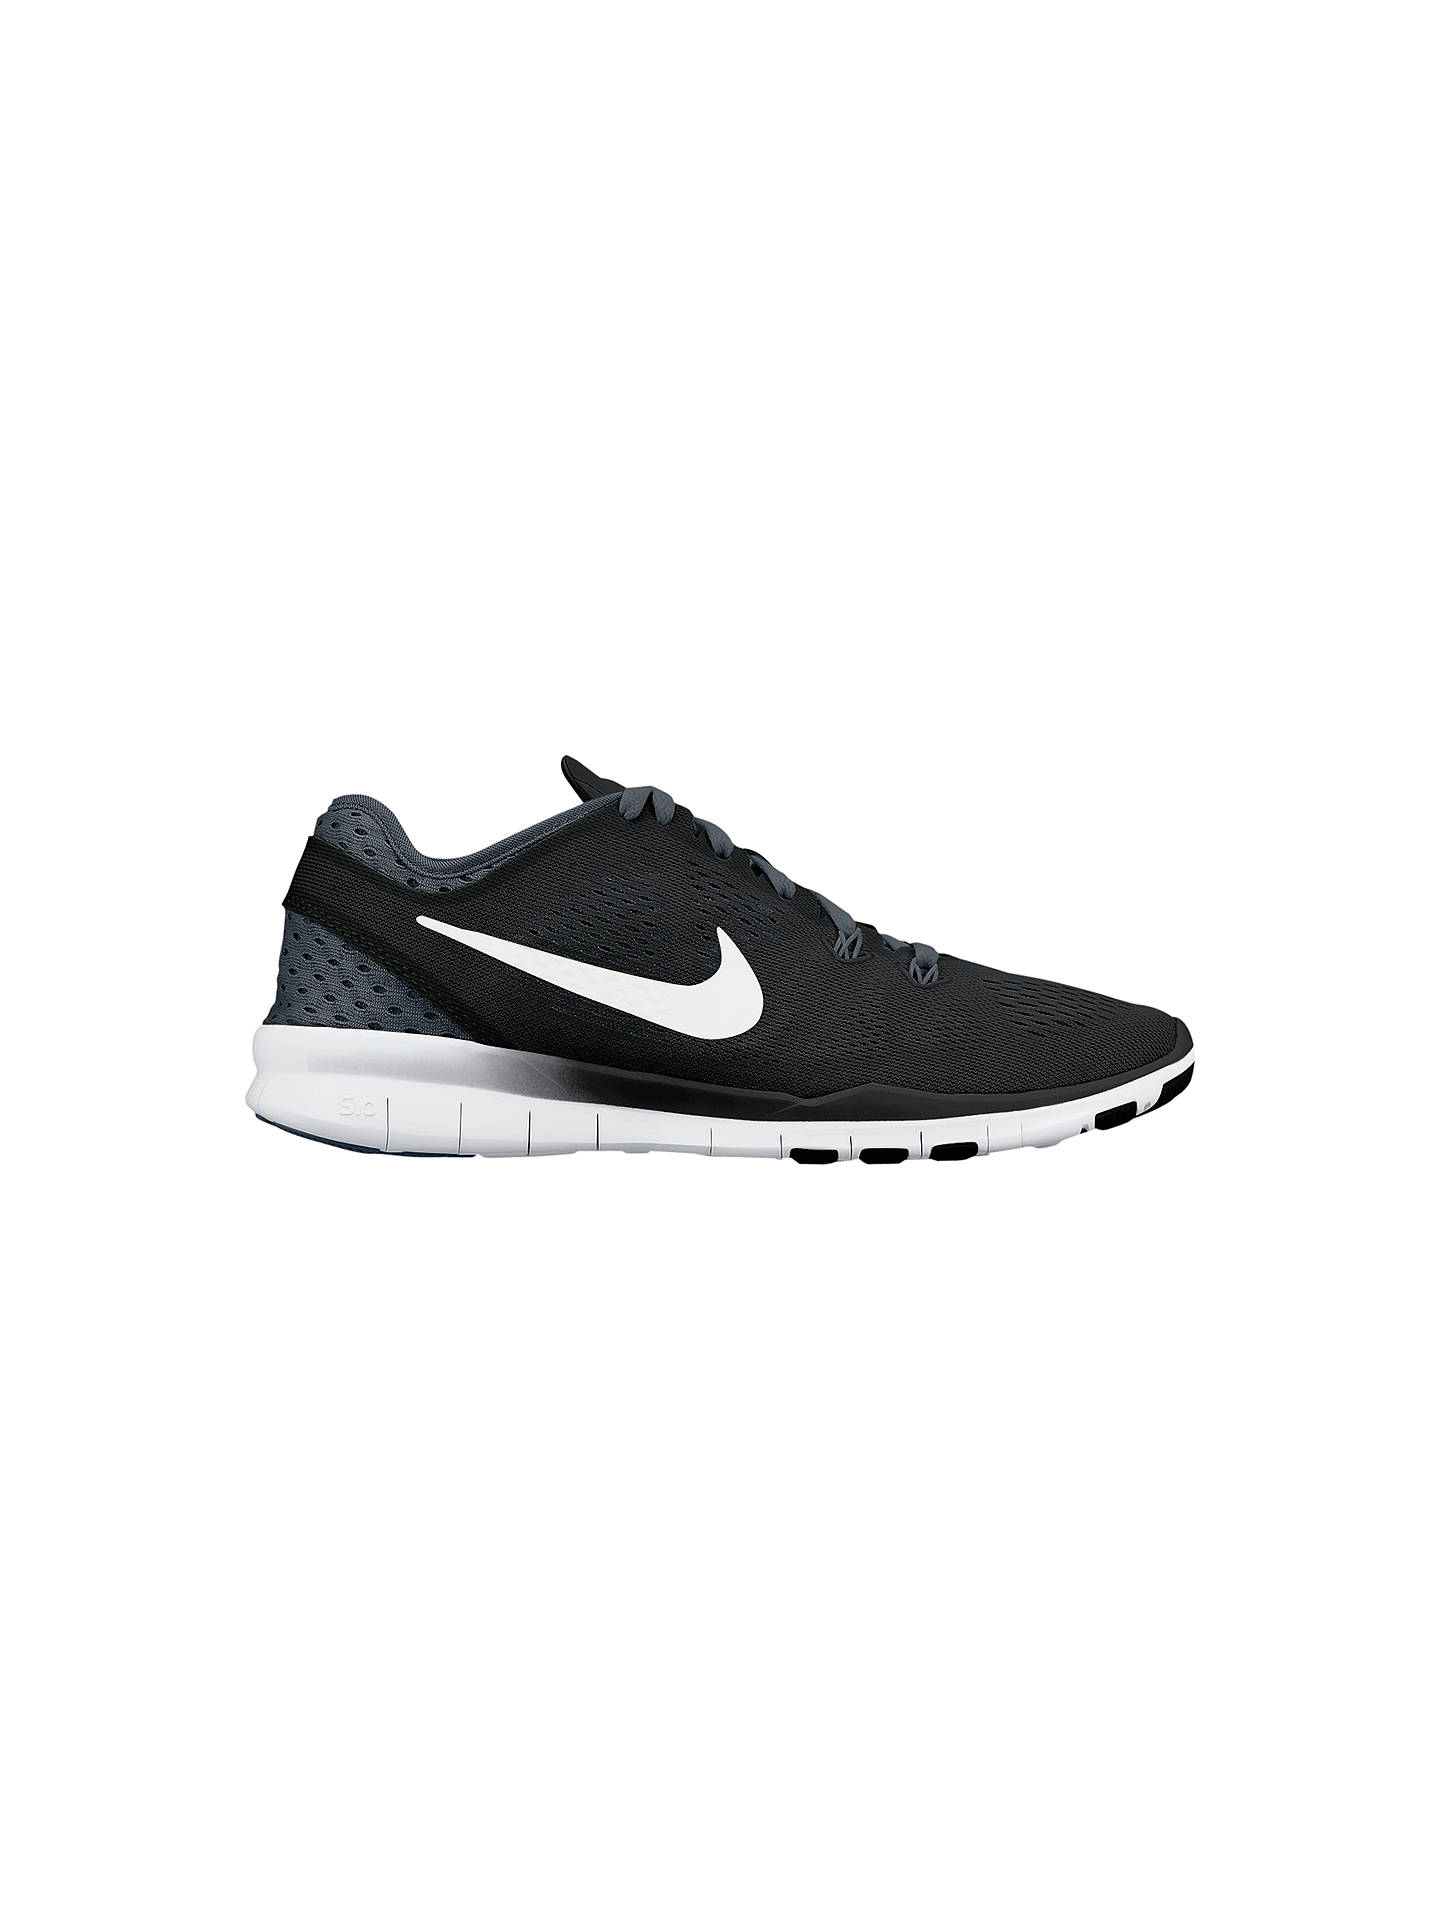 0a4094ea288b5 Buy Nike Free 5.0 TR Fit 5 Breathe Women s Cross Trainers